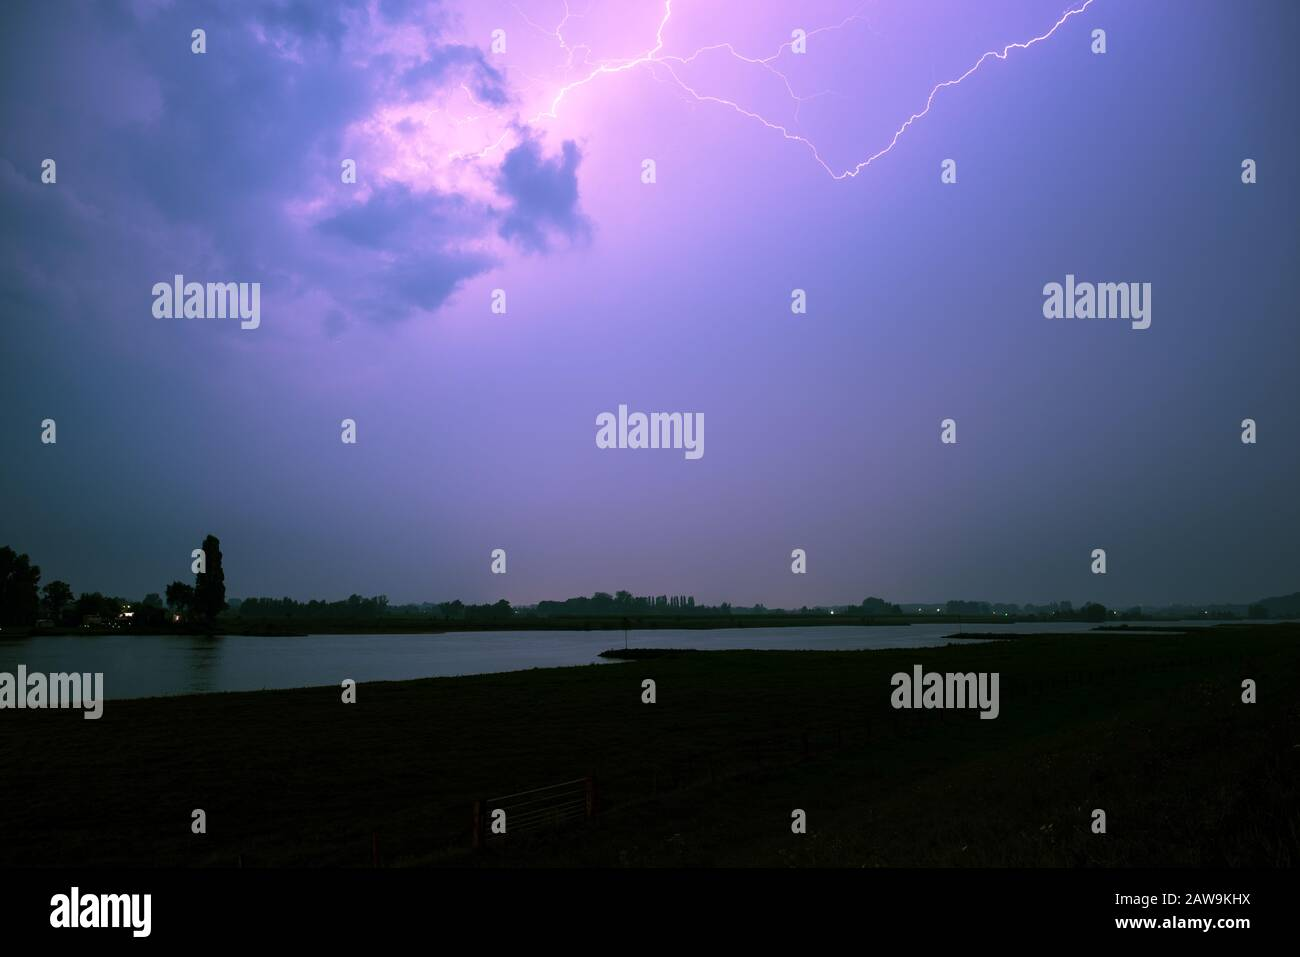 Stunning landscape image of lightning bolt in the sky over a river in central part of The Netherlands Stock Photo